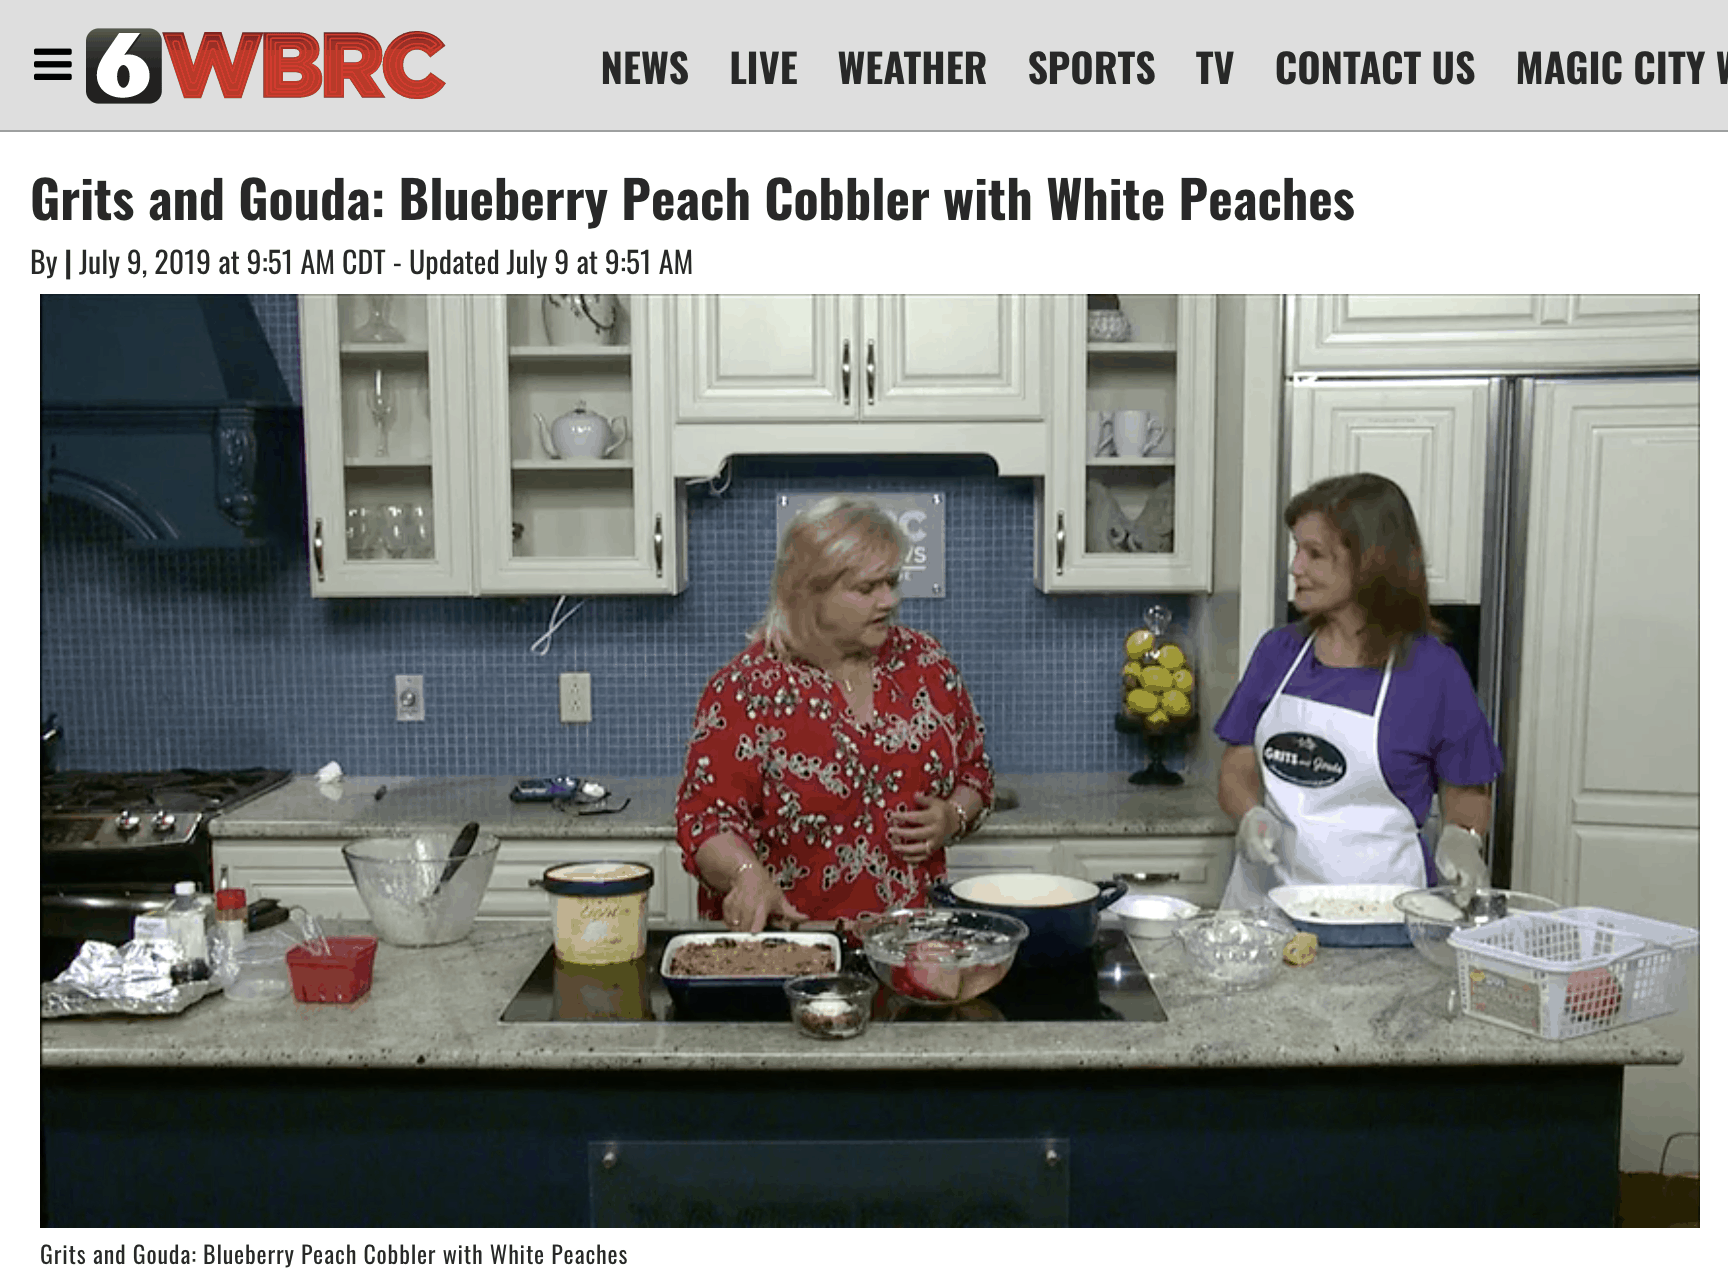 Picture of Kathleen Royal Phillips and Janice Rogers on Good Day Alabama making blueberry peach cobbler